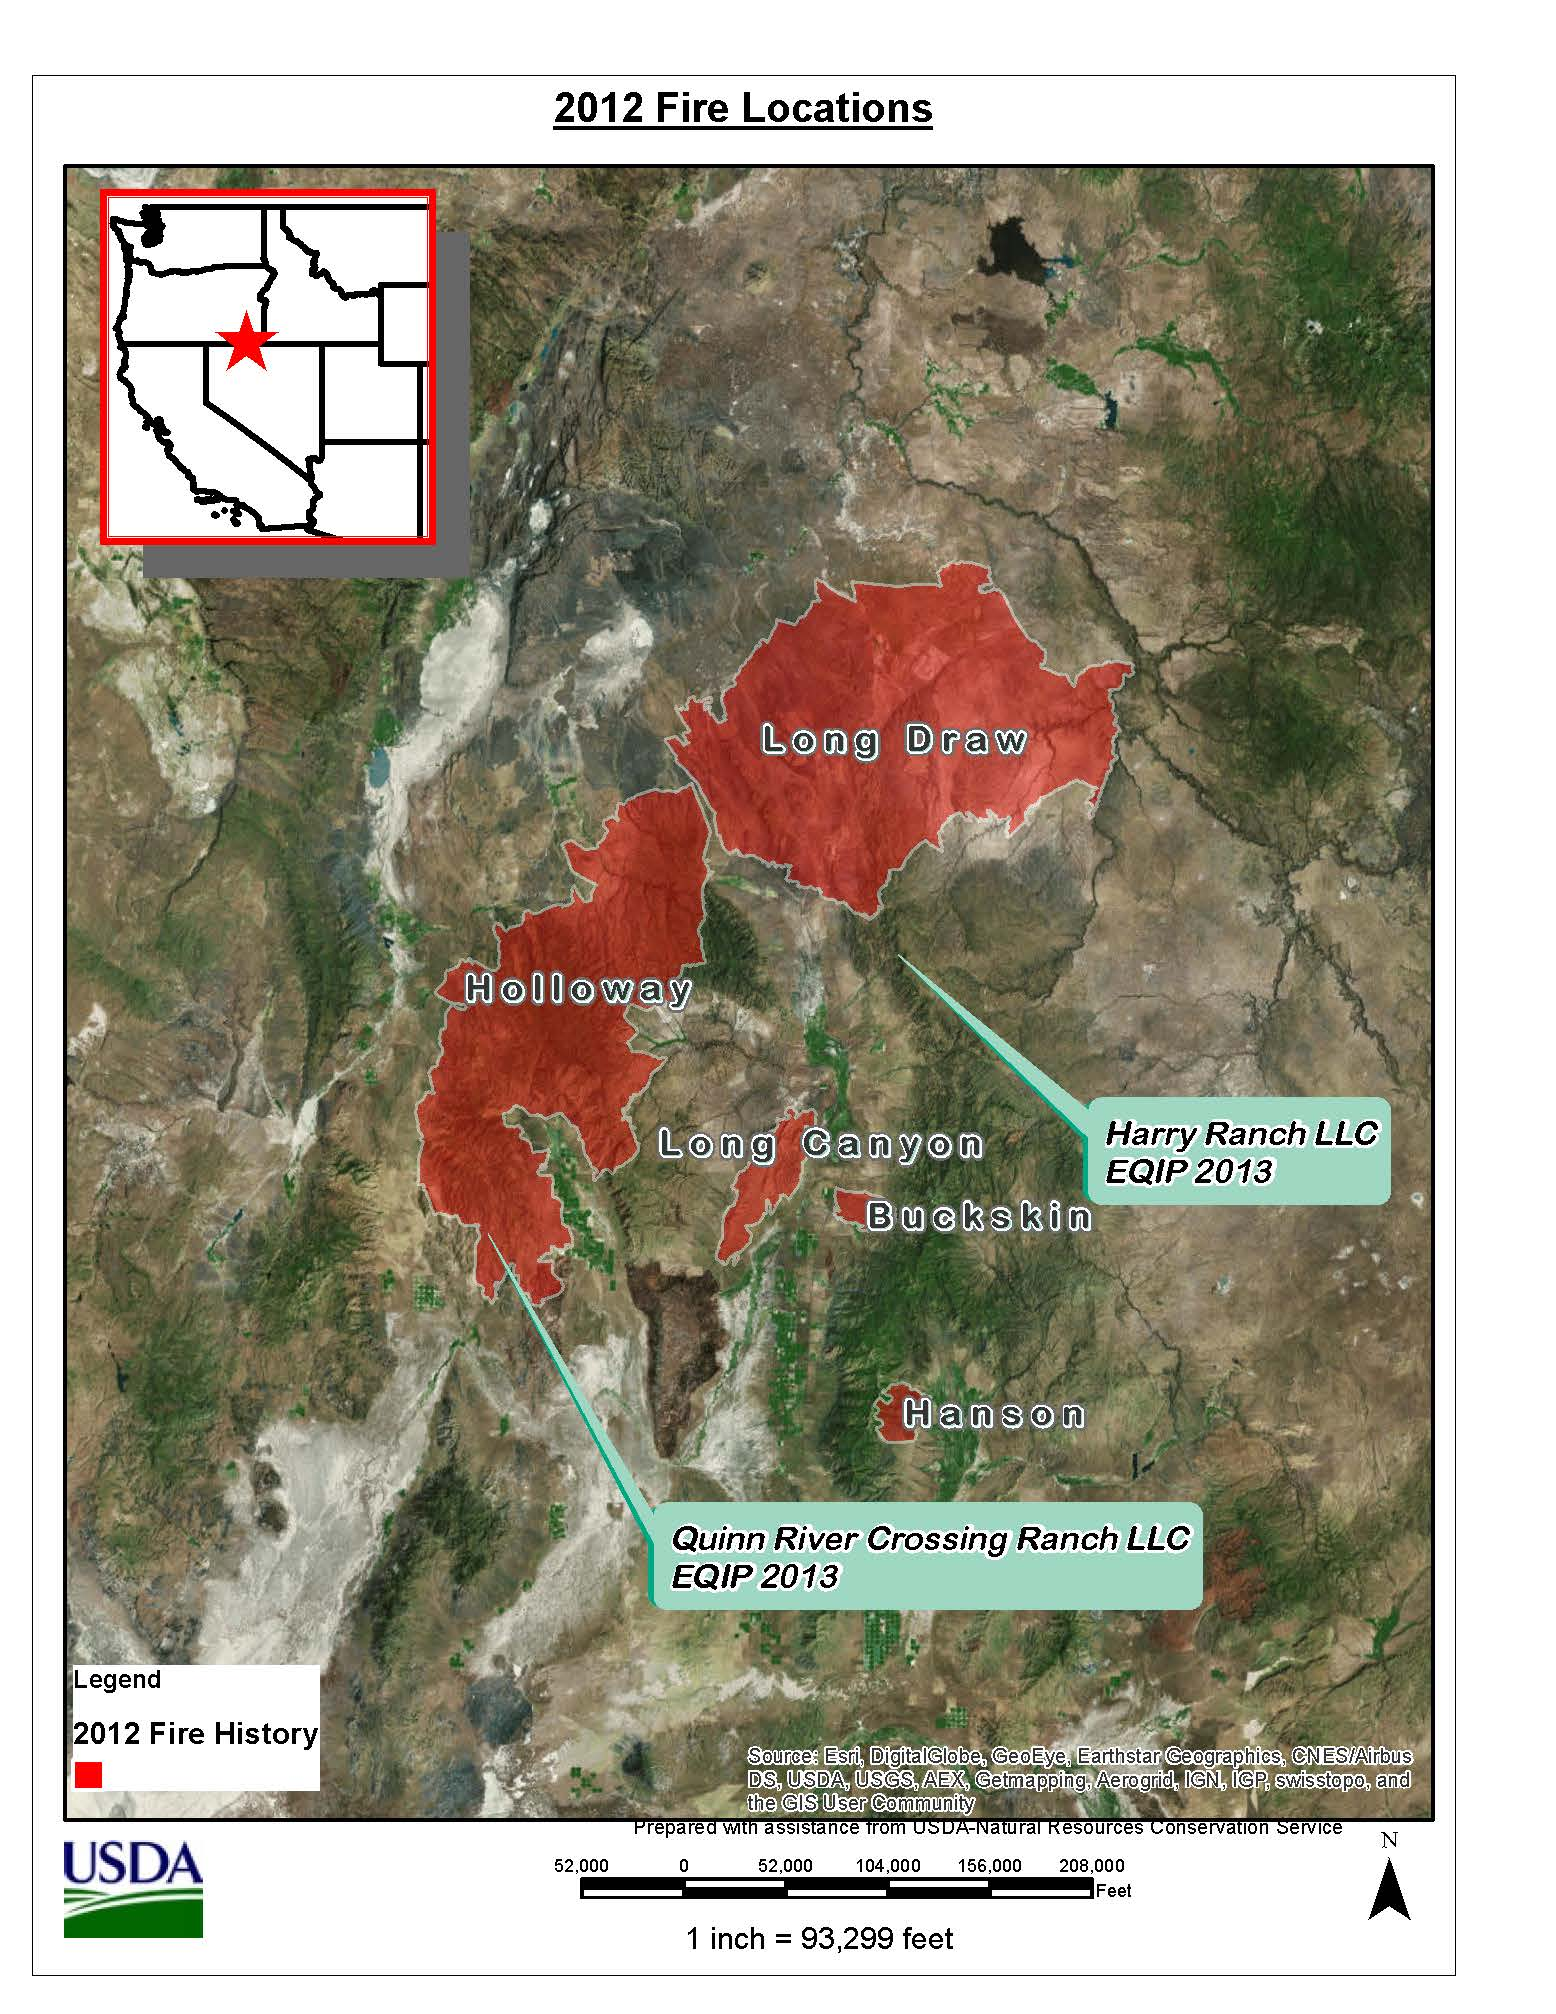 2012 Fire Location Map